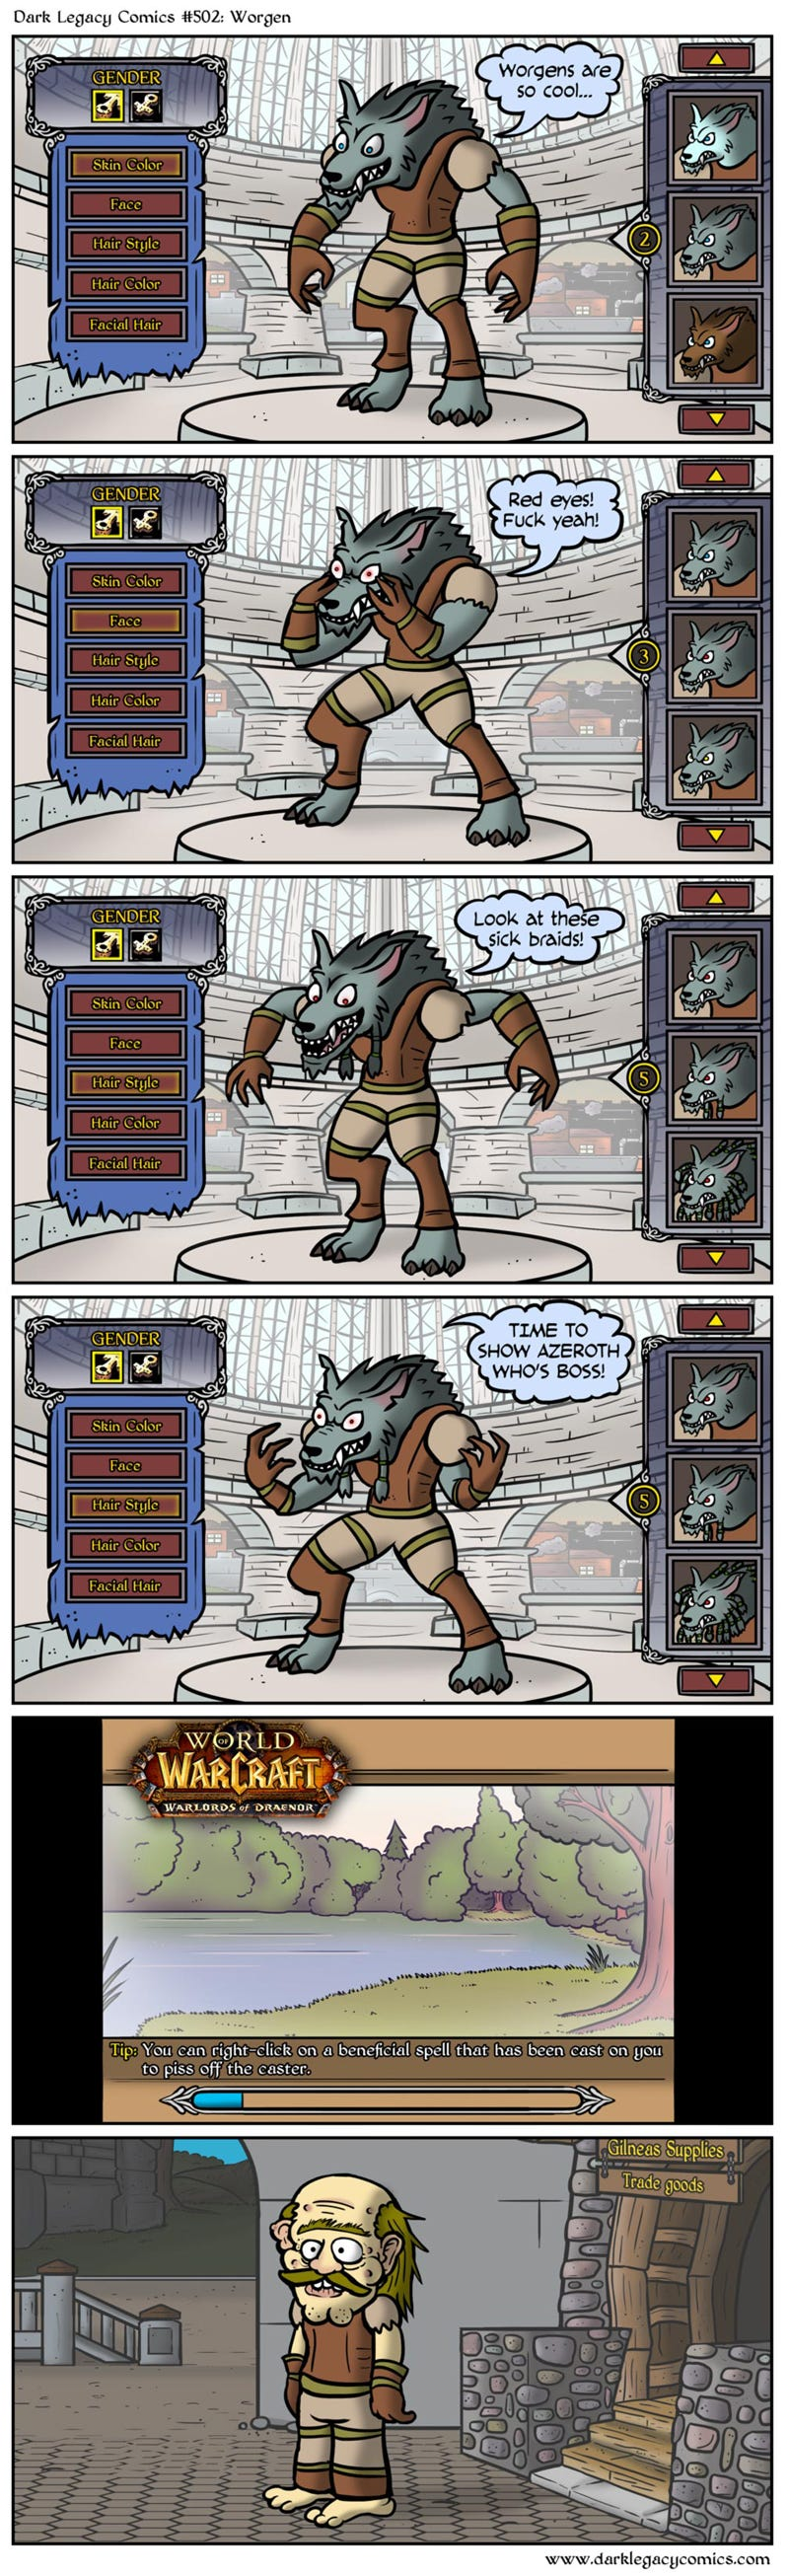 The Truth About World of Warcraft's Worgen Characters